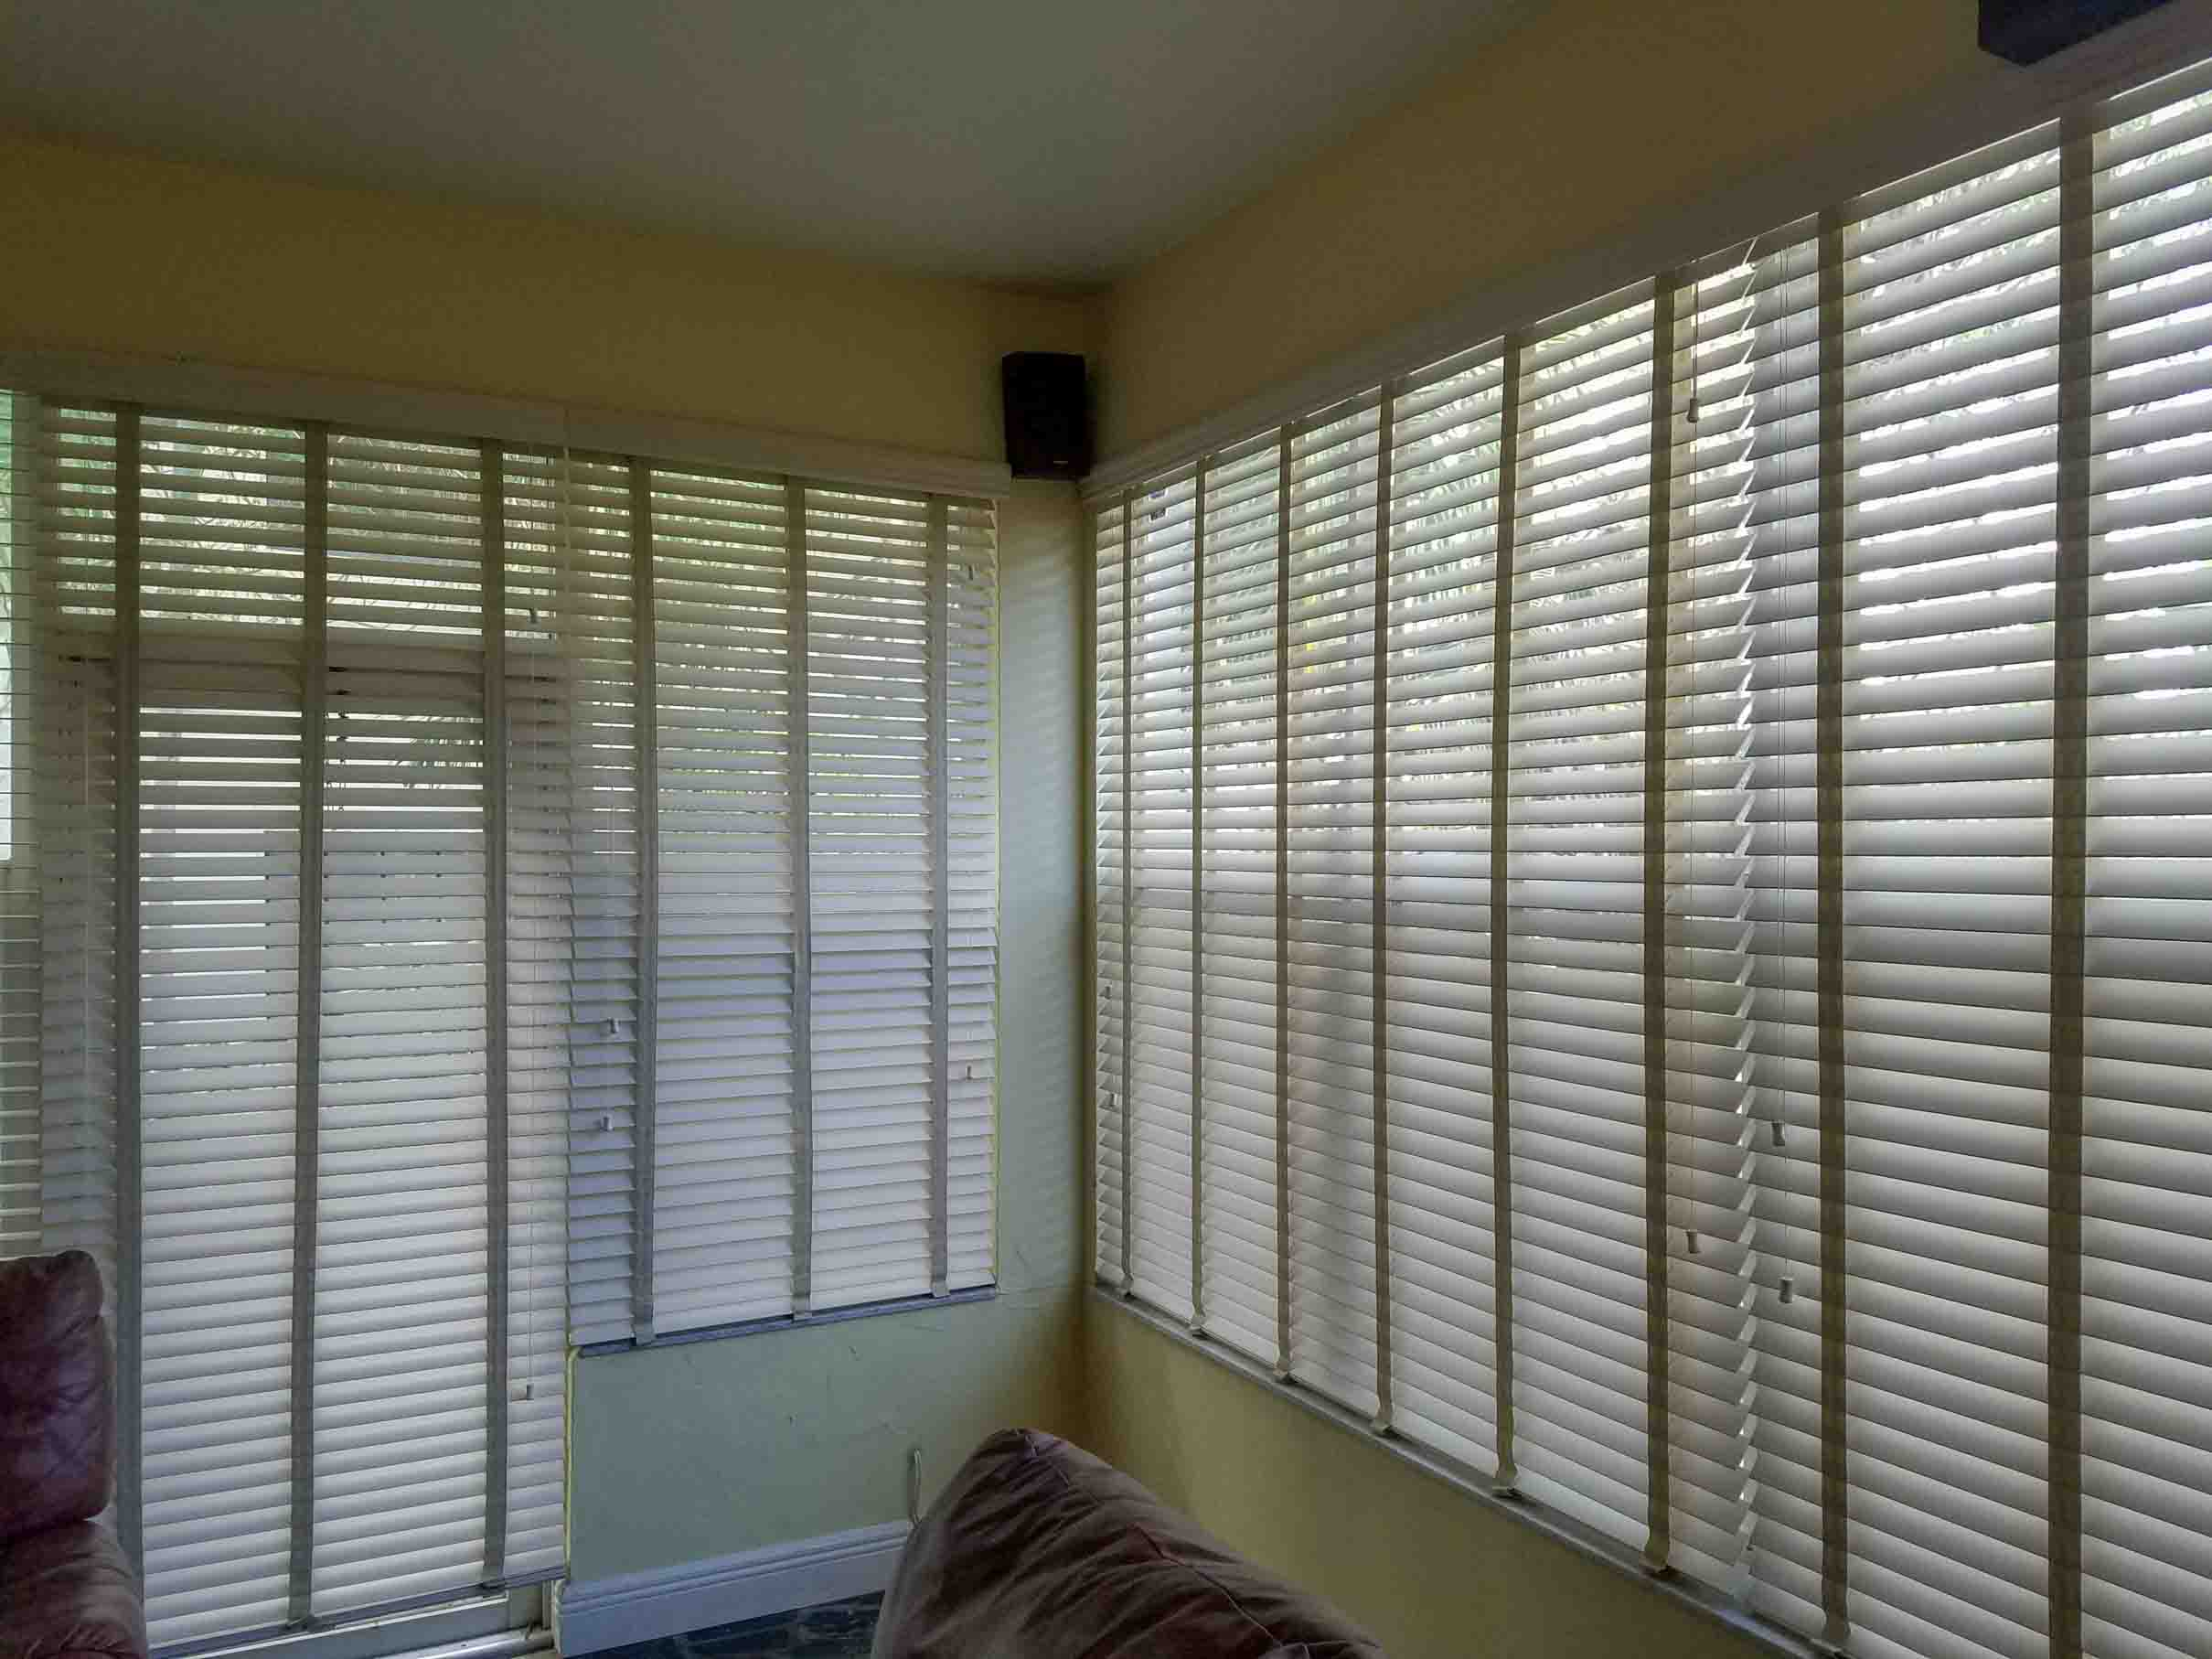 wood blinds gallery WOOD BLINDS GALLERY 20180224 122224